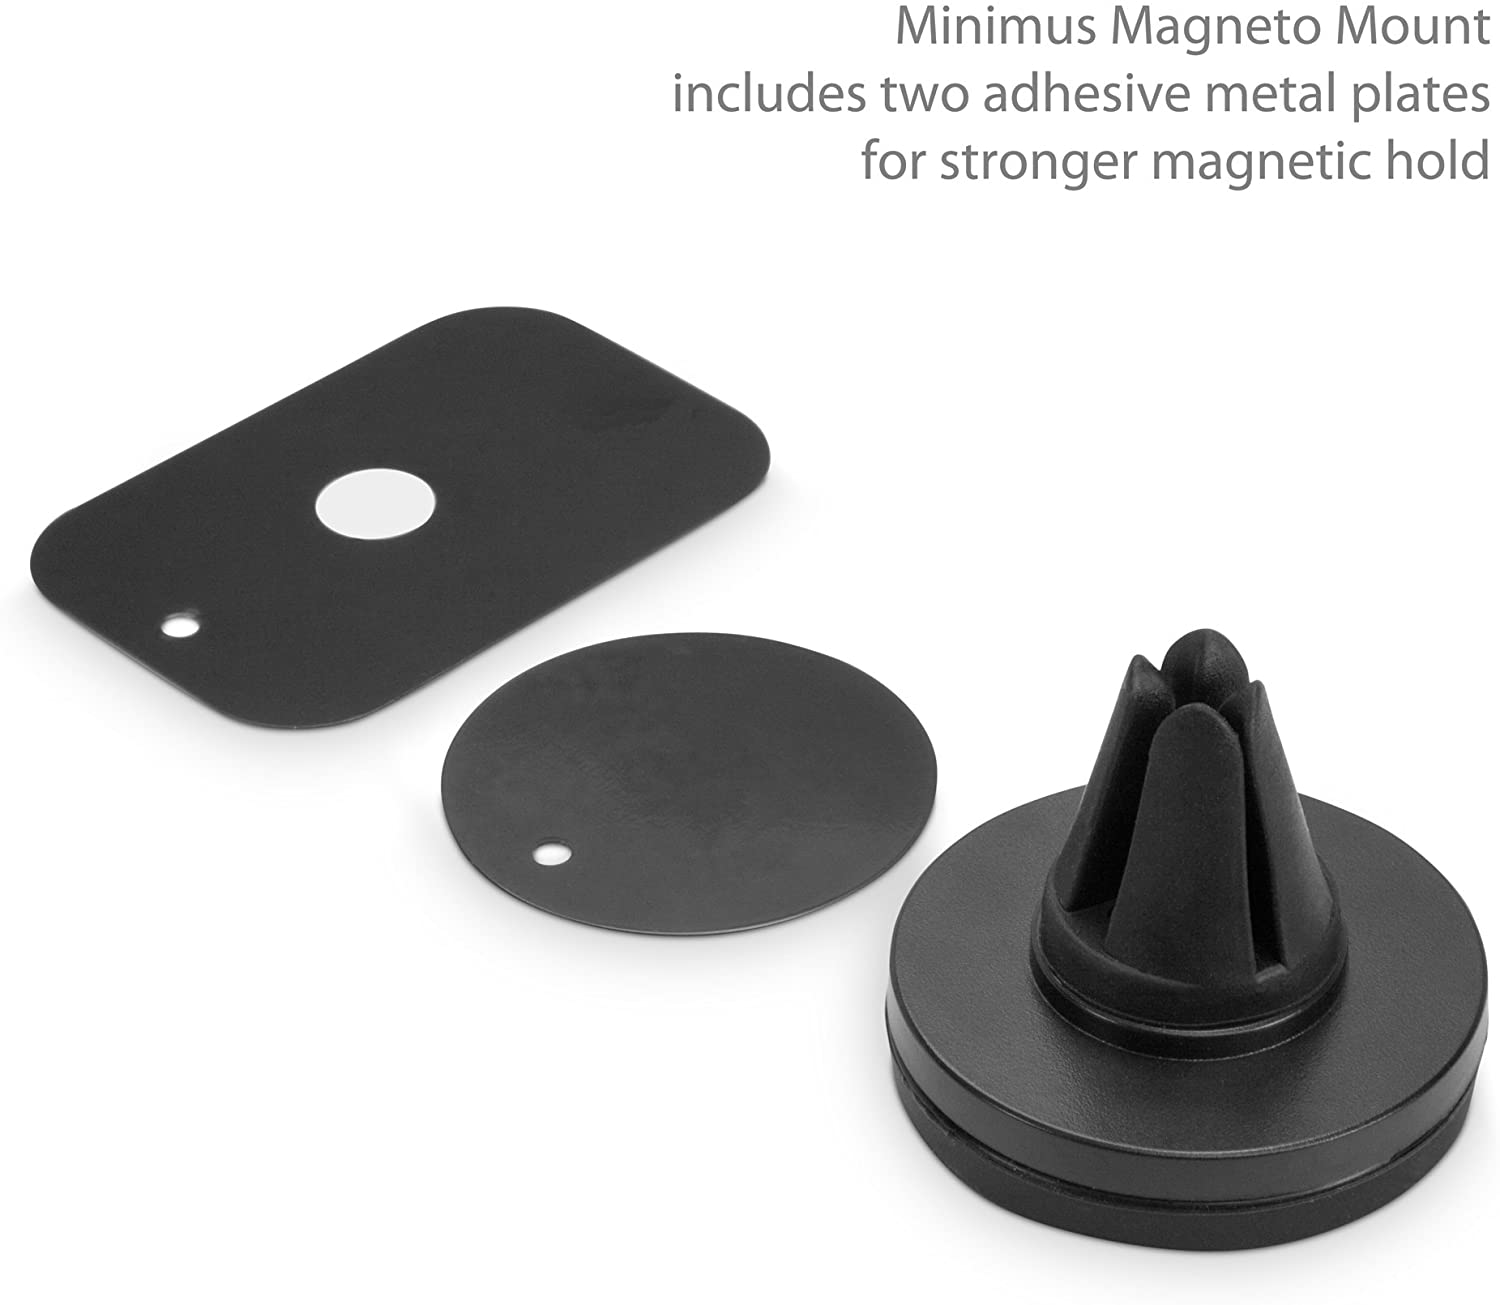 Minimus MagnetoMount Umidigi F1 Play Car Mount BoxWave Magnetic Car Mount Magnetic Car Holder for Umidigi F1 Play